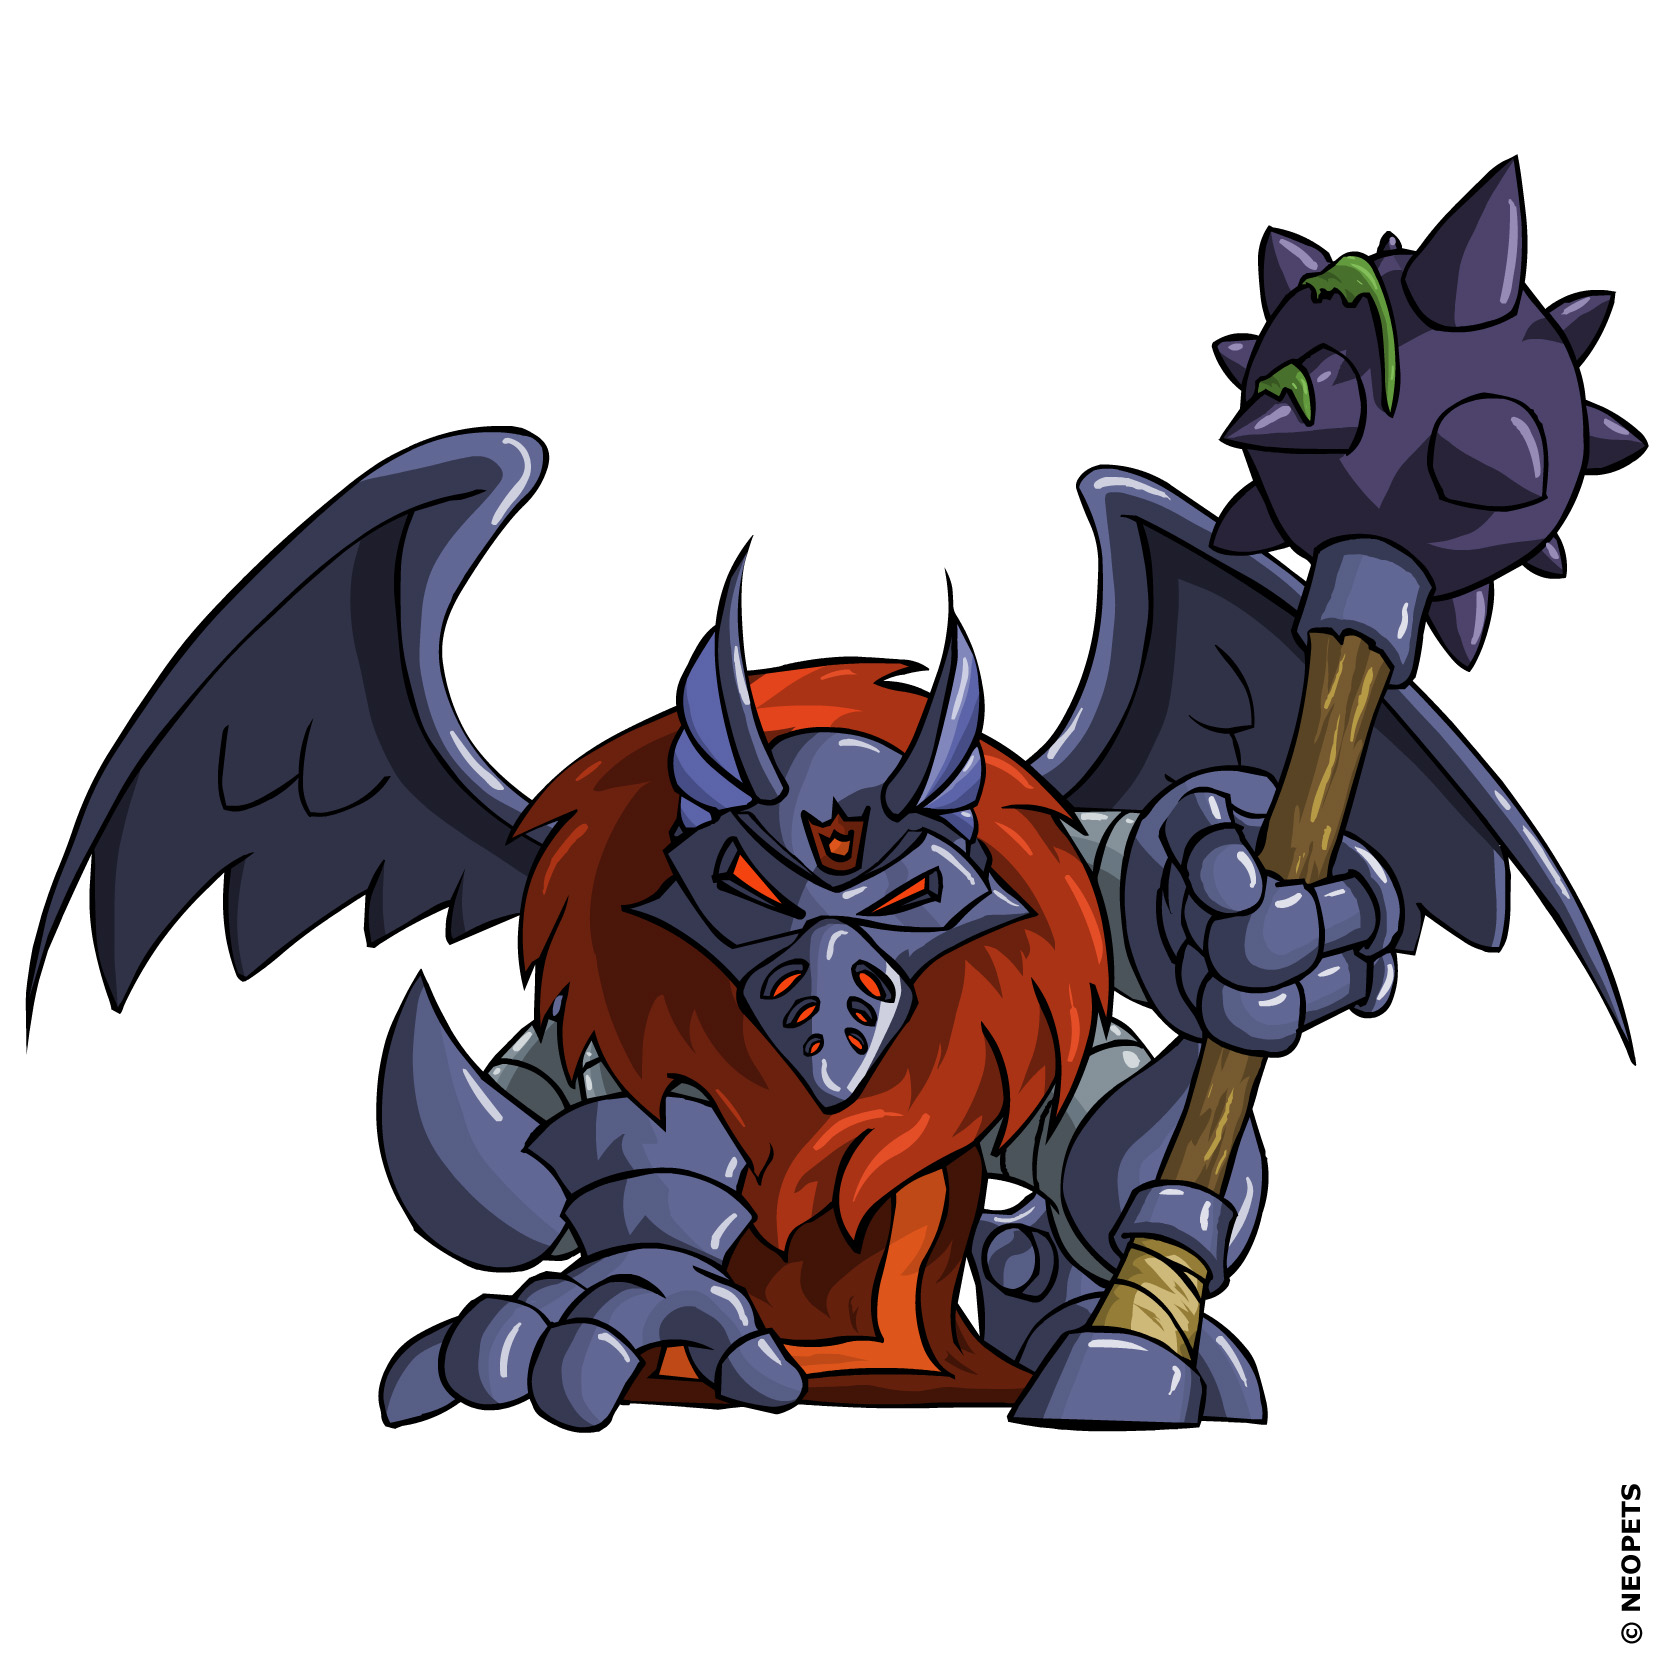 http://images.neopets.com/press/eyrie_9.jpg